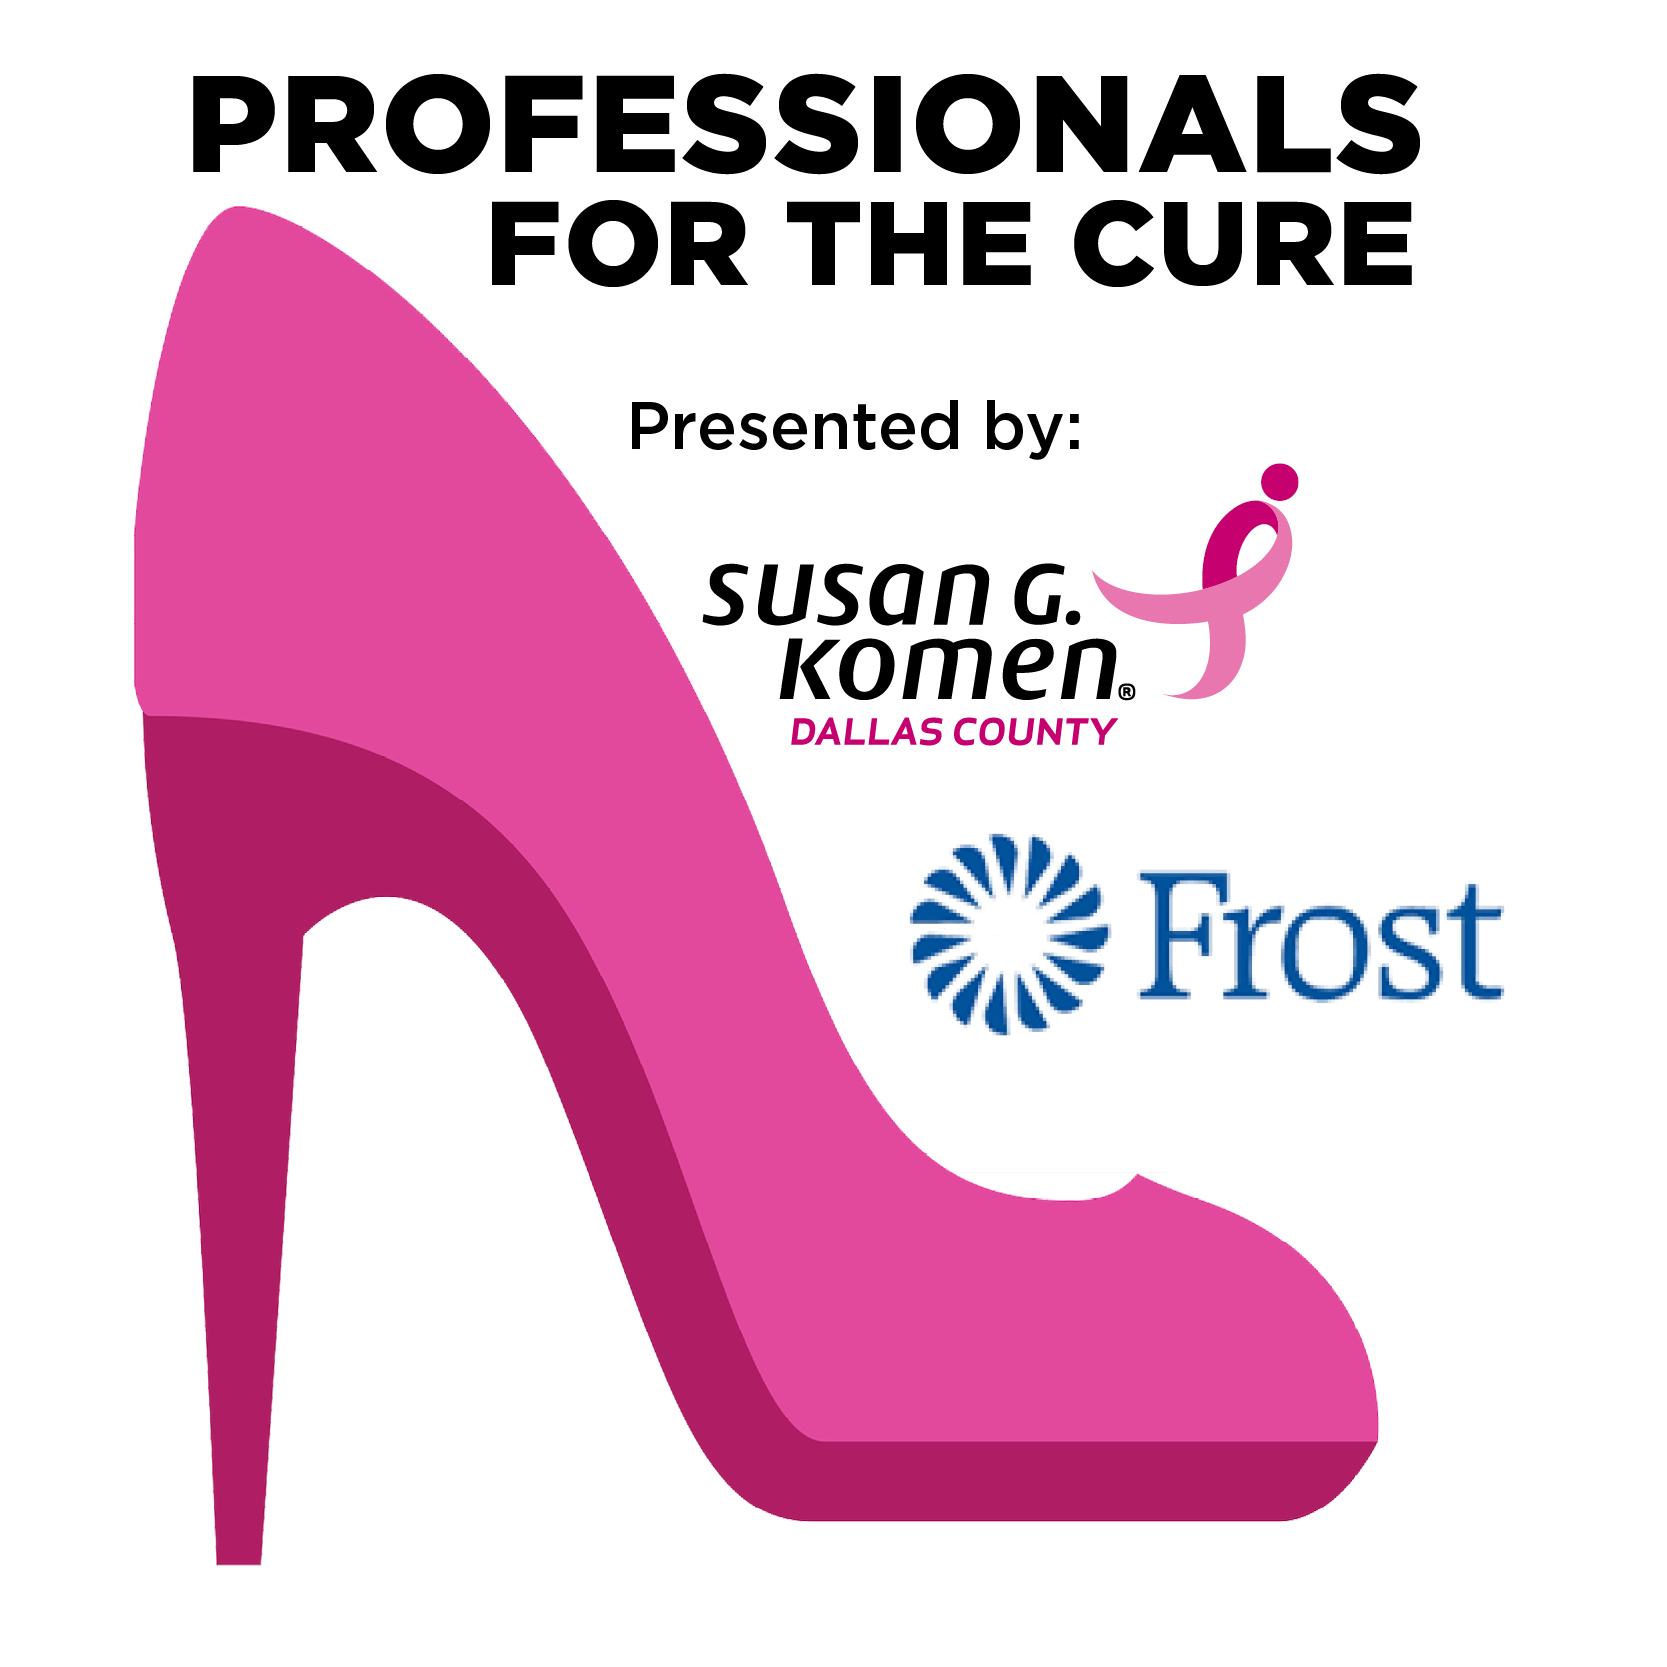 pros for the cure.png